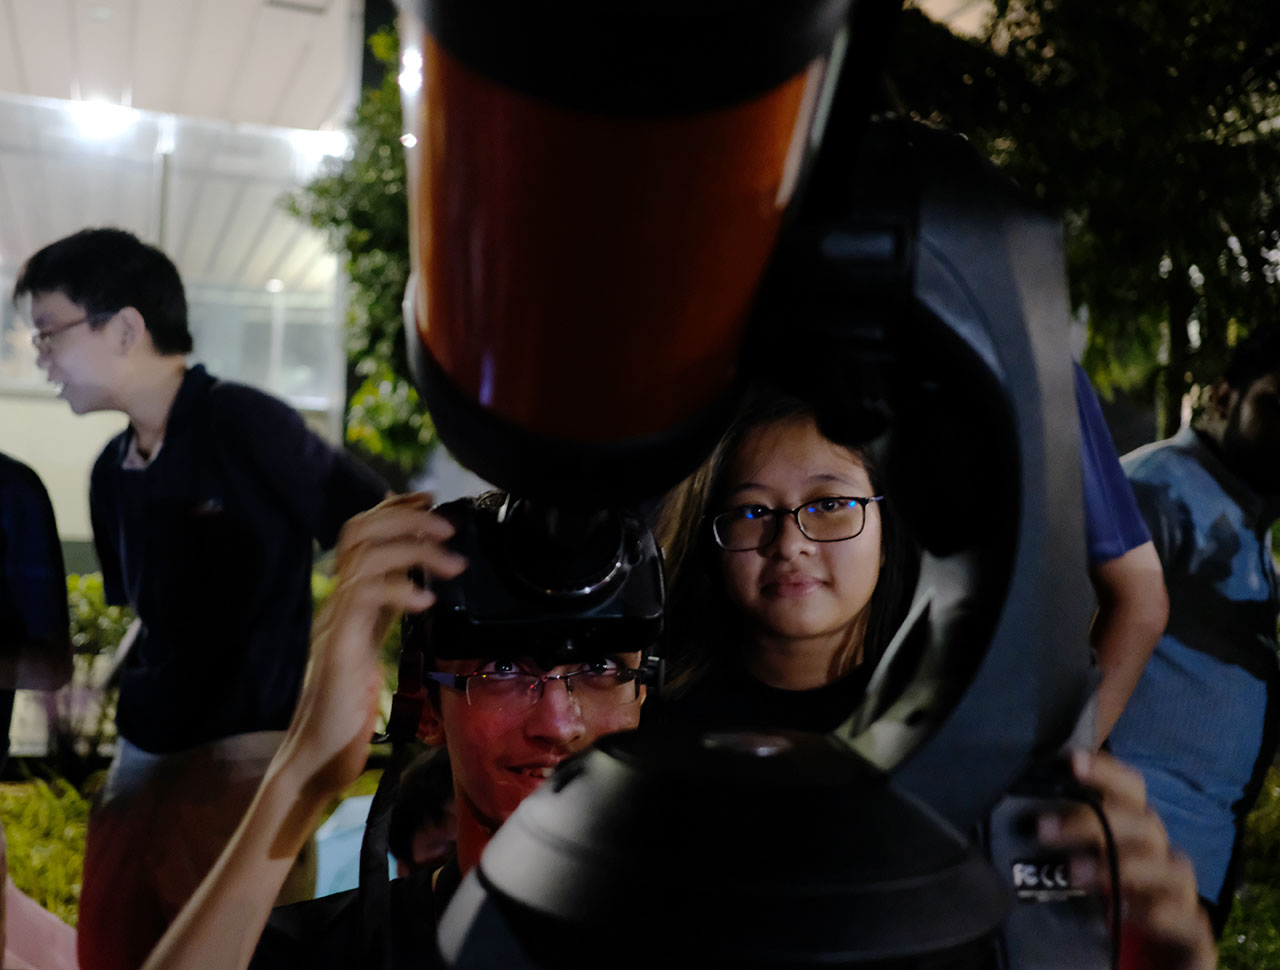 Last Night, the Lunar Eclipse Brought Out the Geek in All of Us